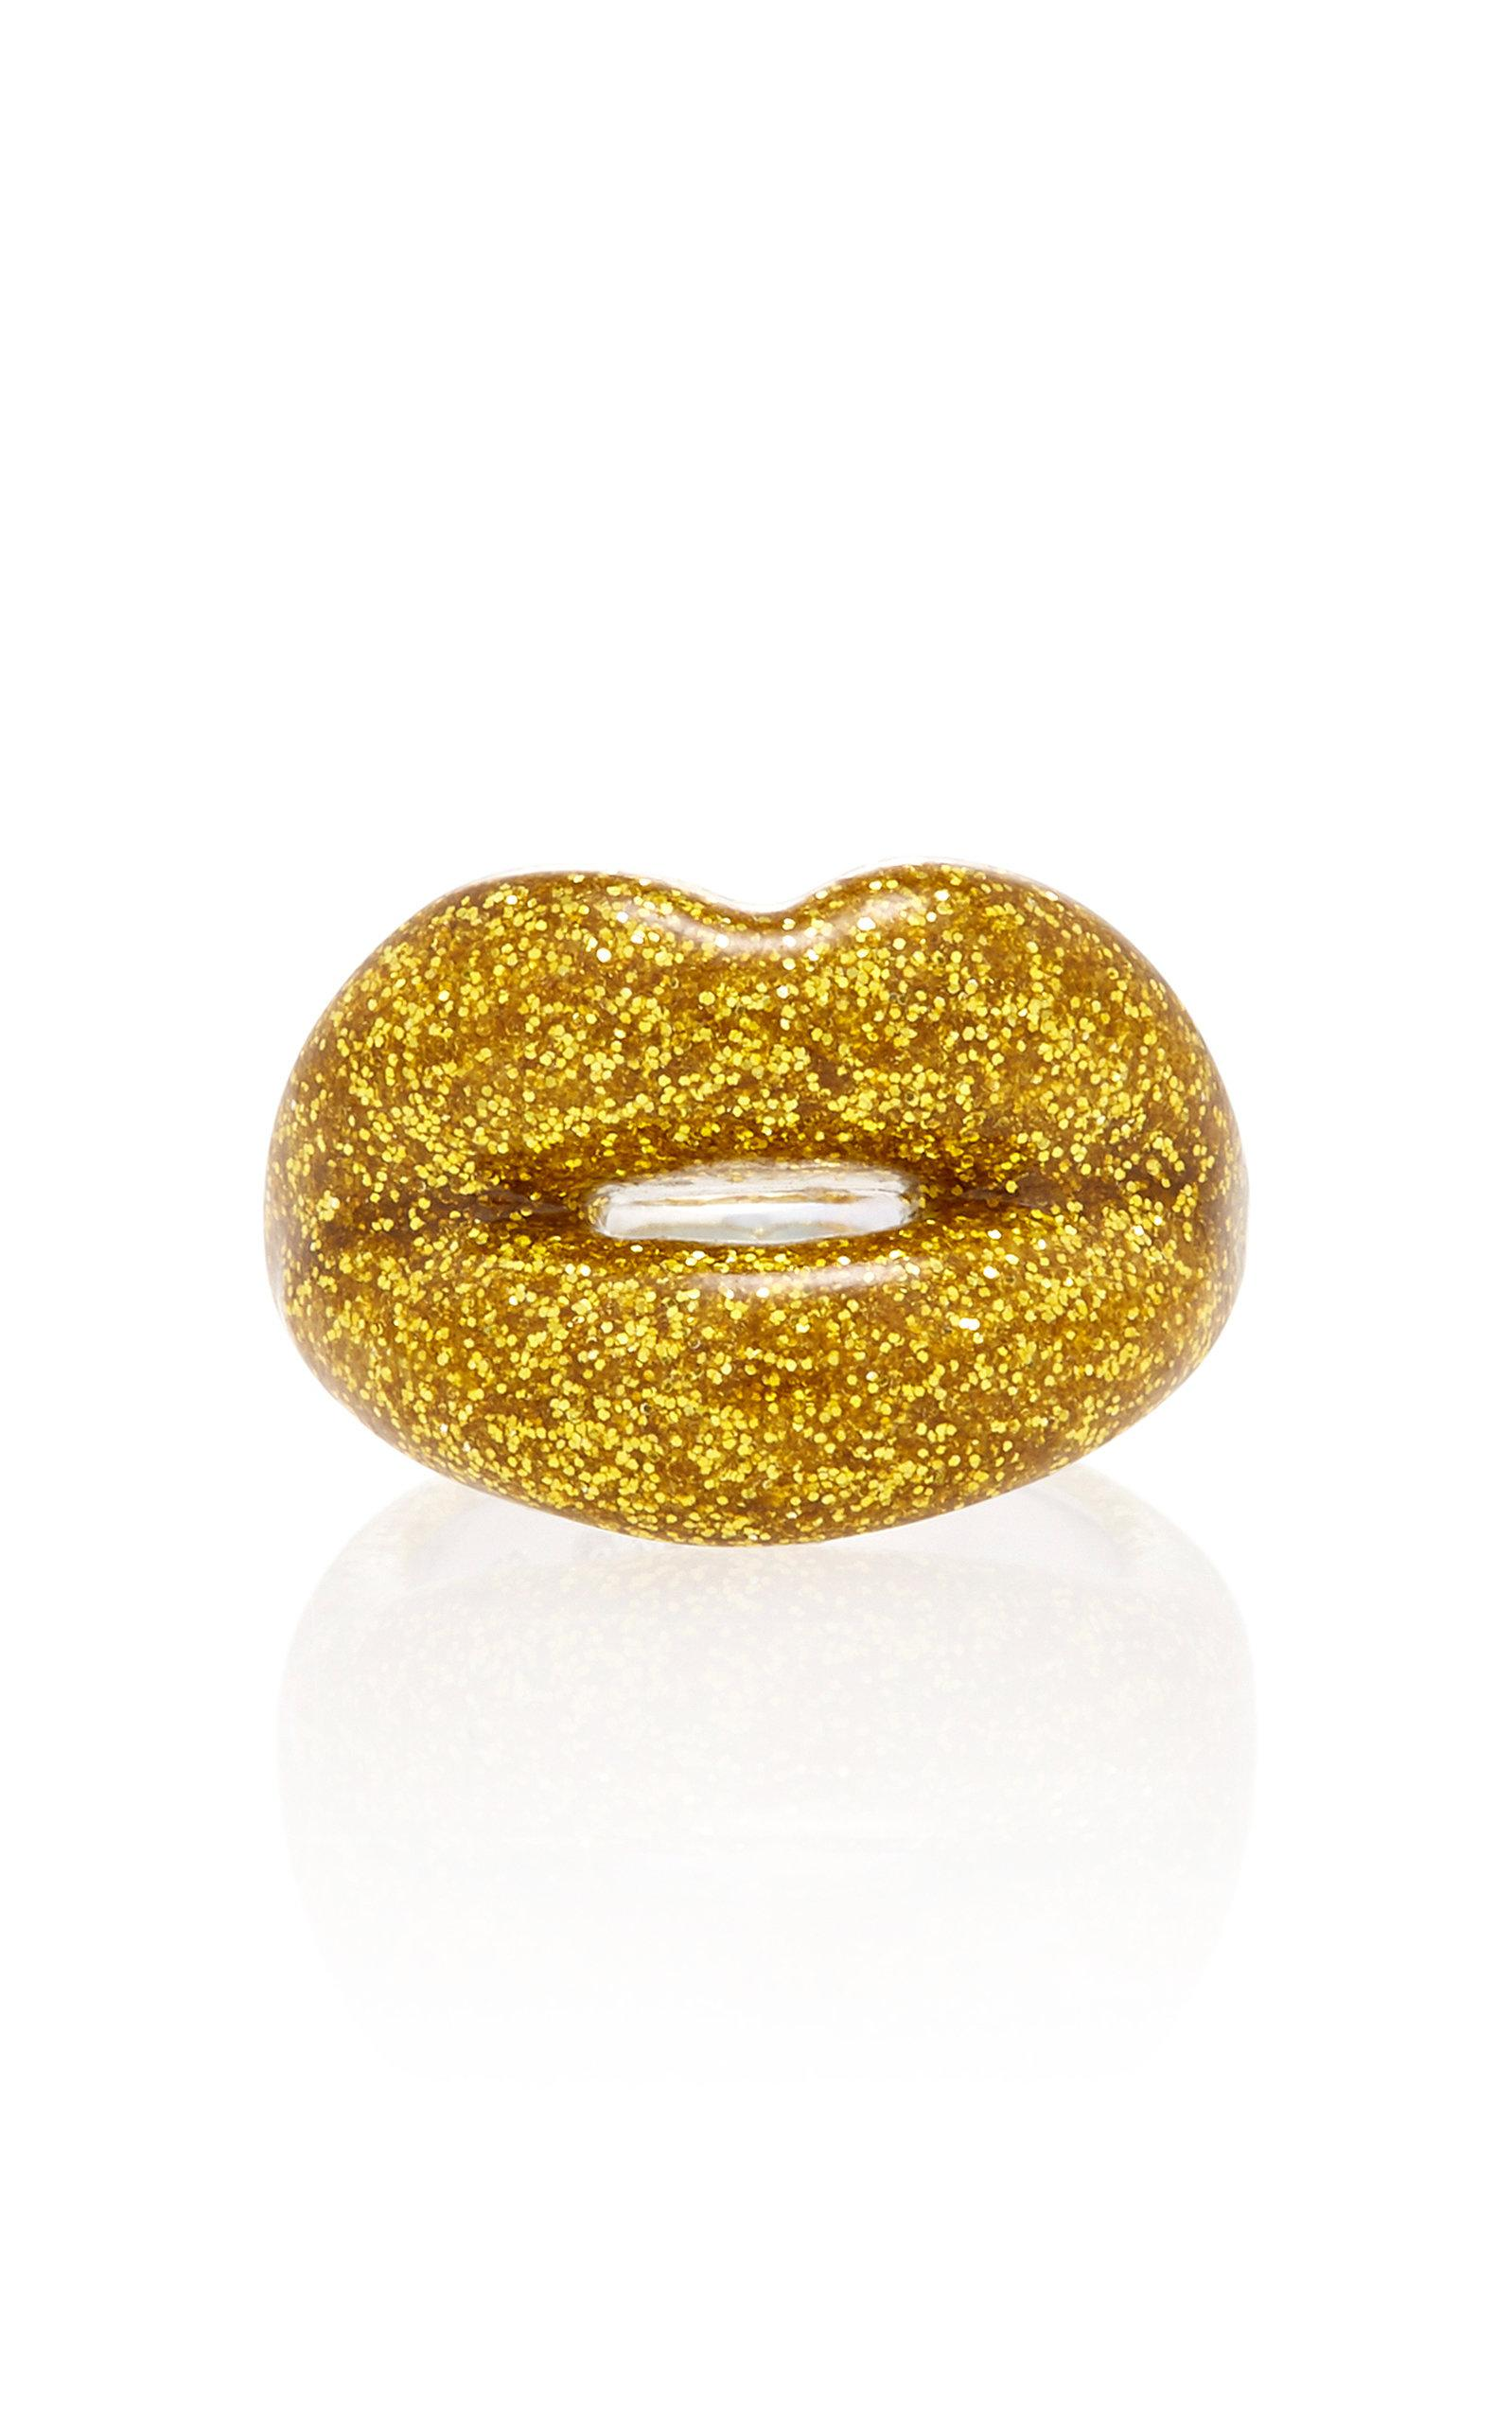 Hot Lips By Solange Glitter Gold Hotlips Ring